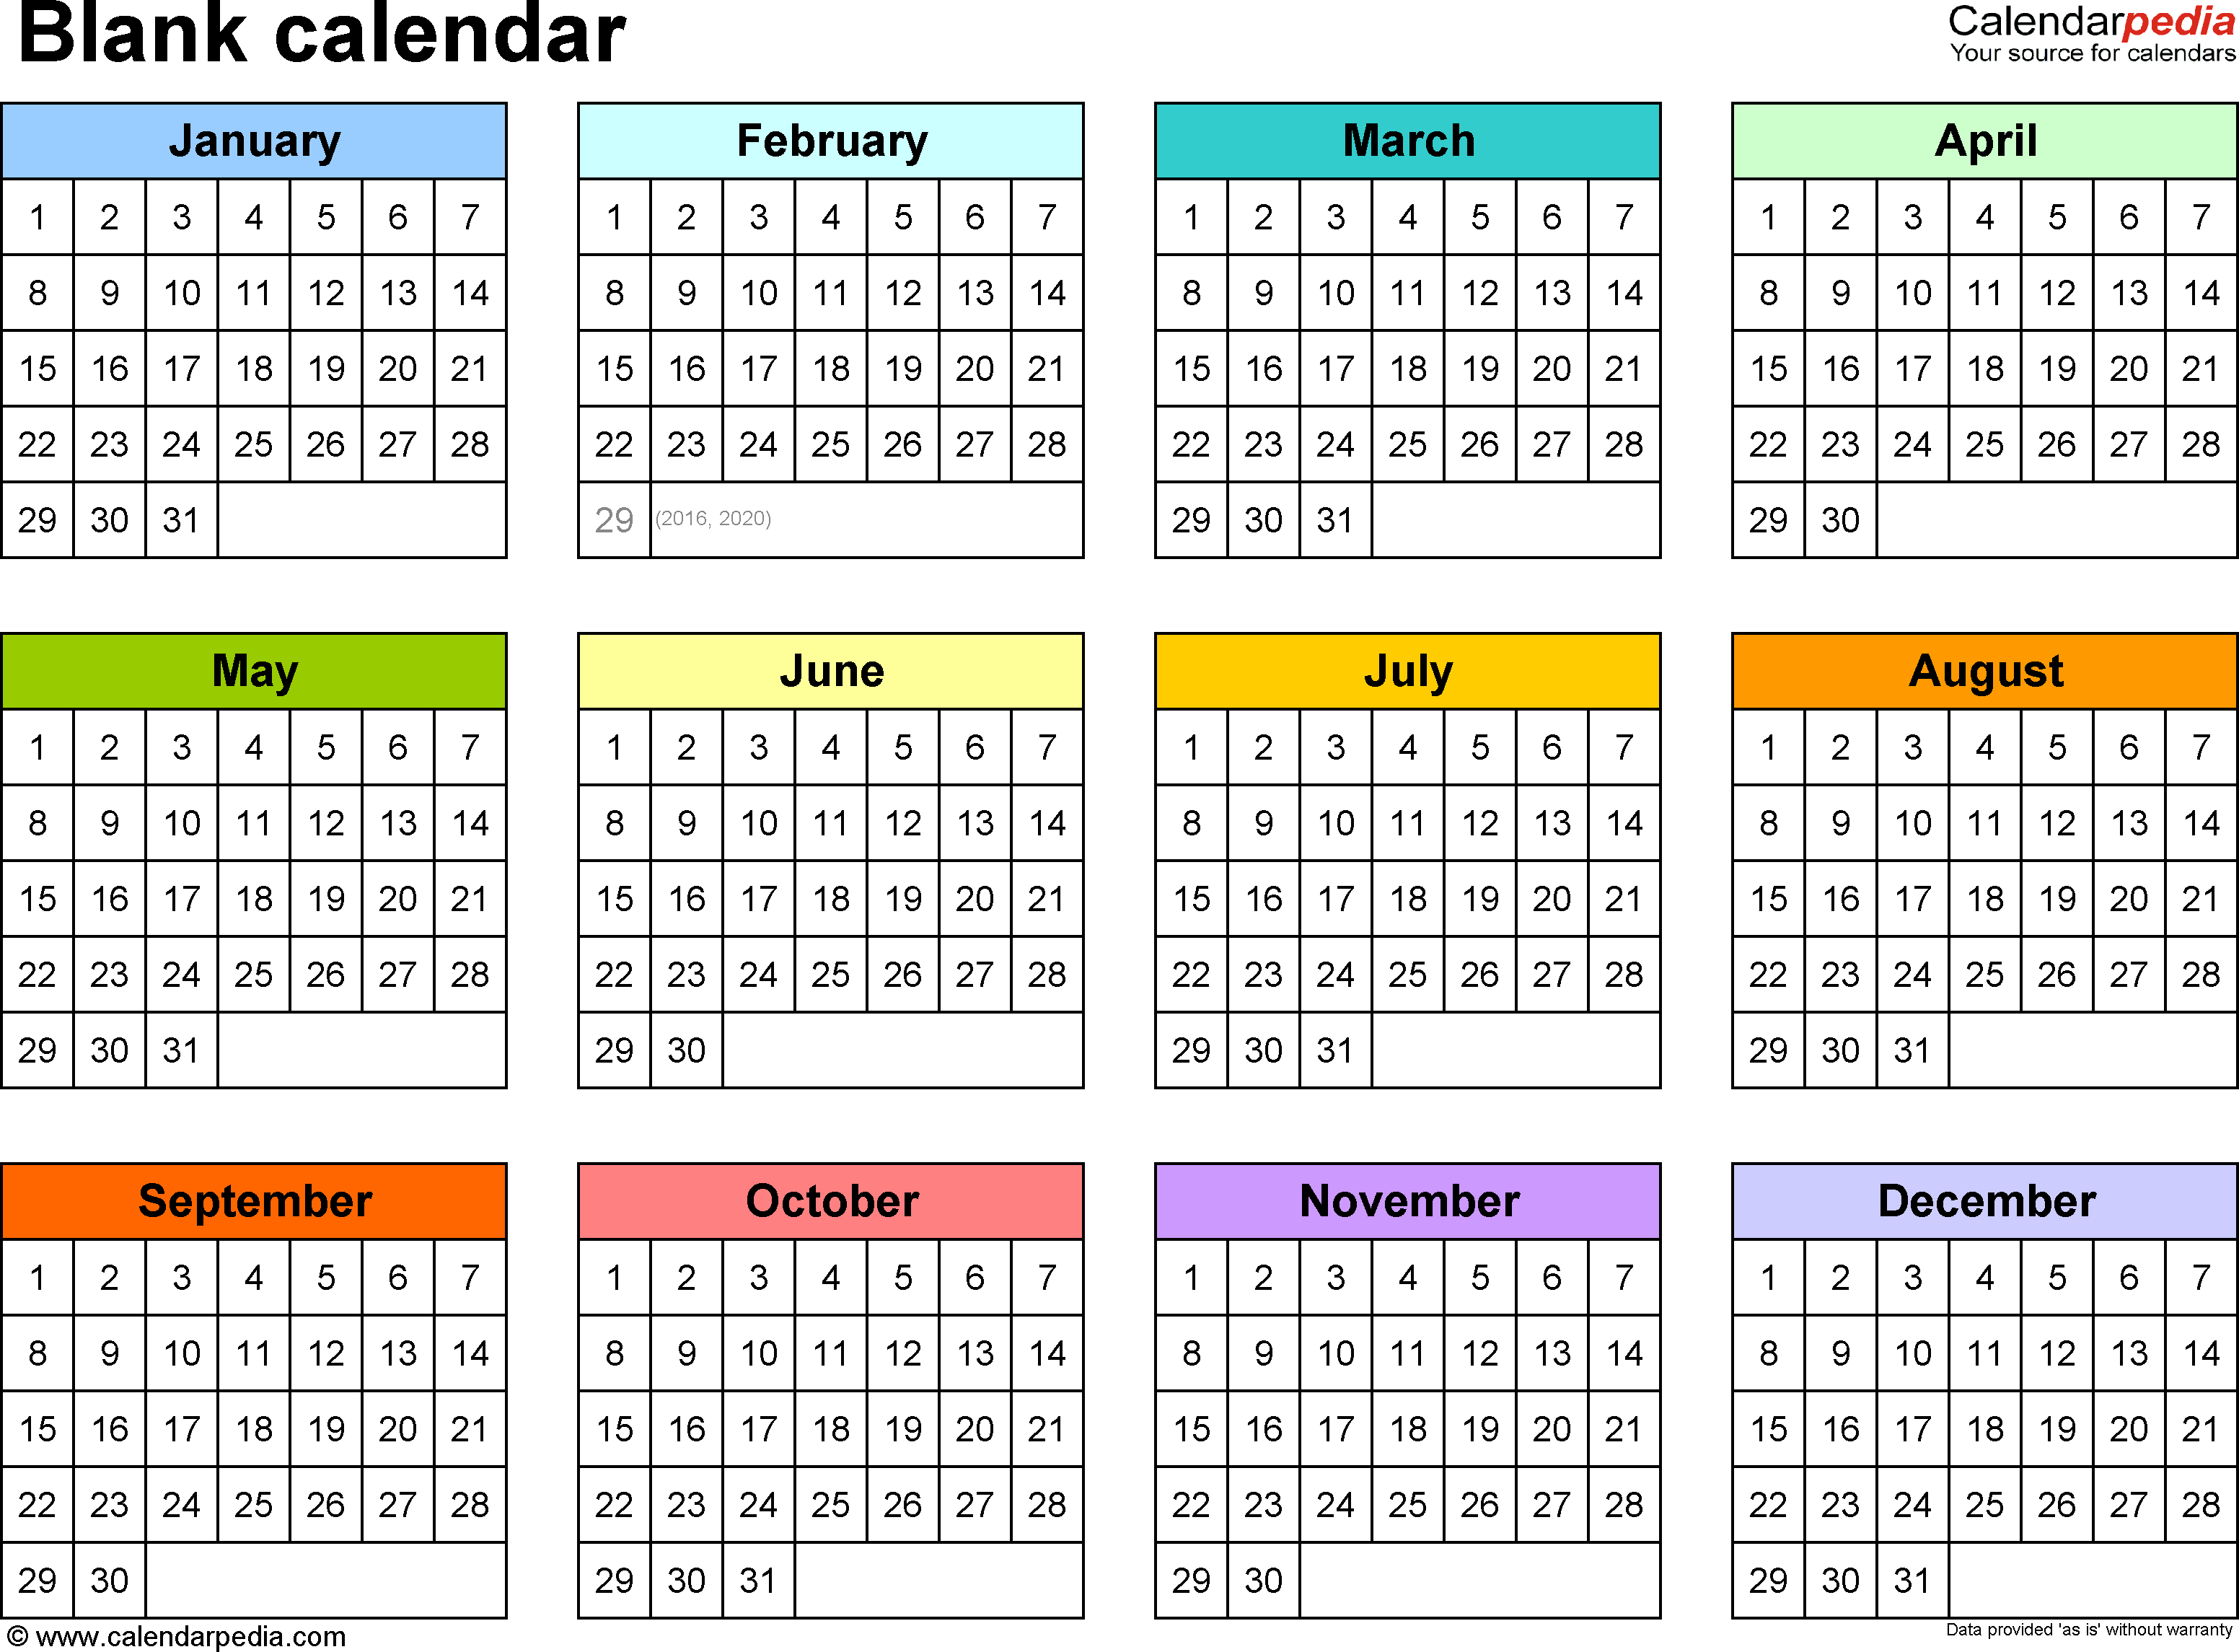 Blank Calendar - 9 Free Printable Microsoft Word Templates intended for Calendar Template Year At A Glance